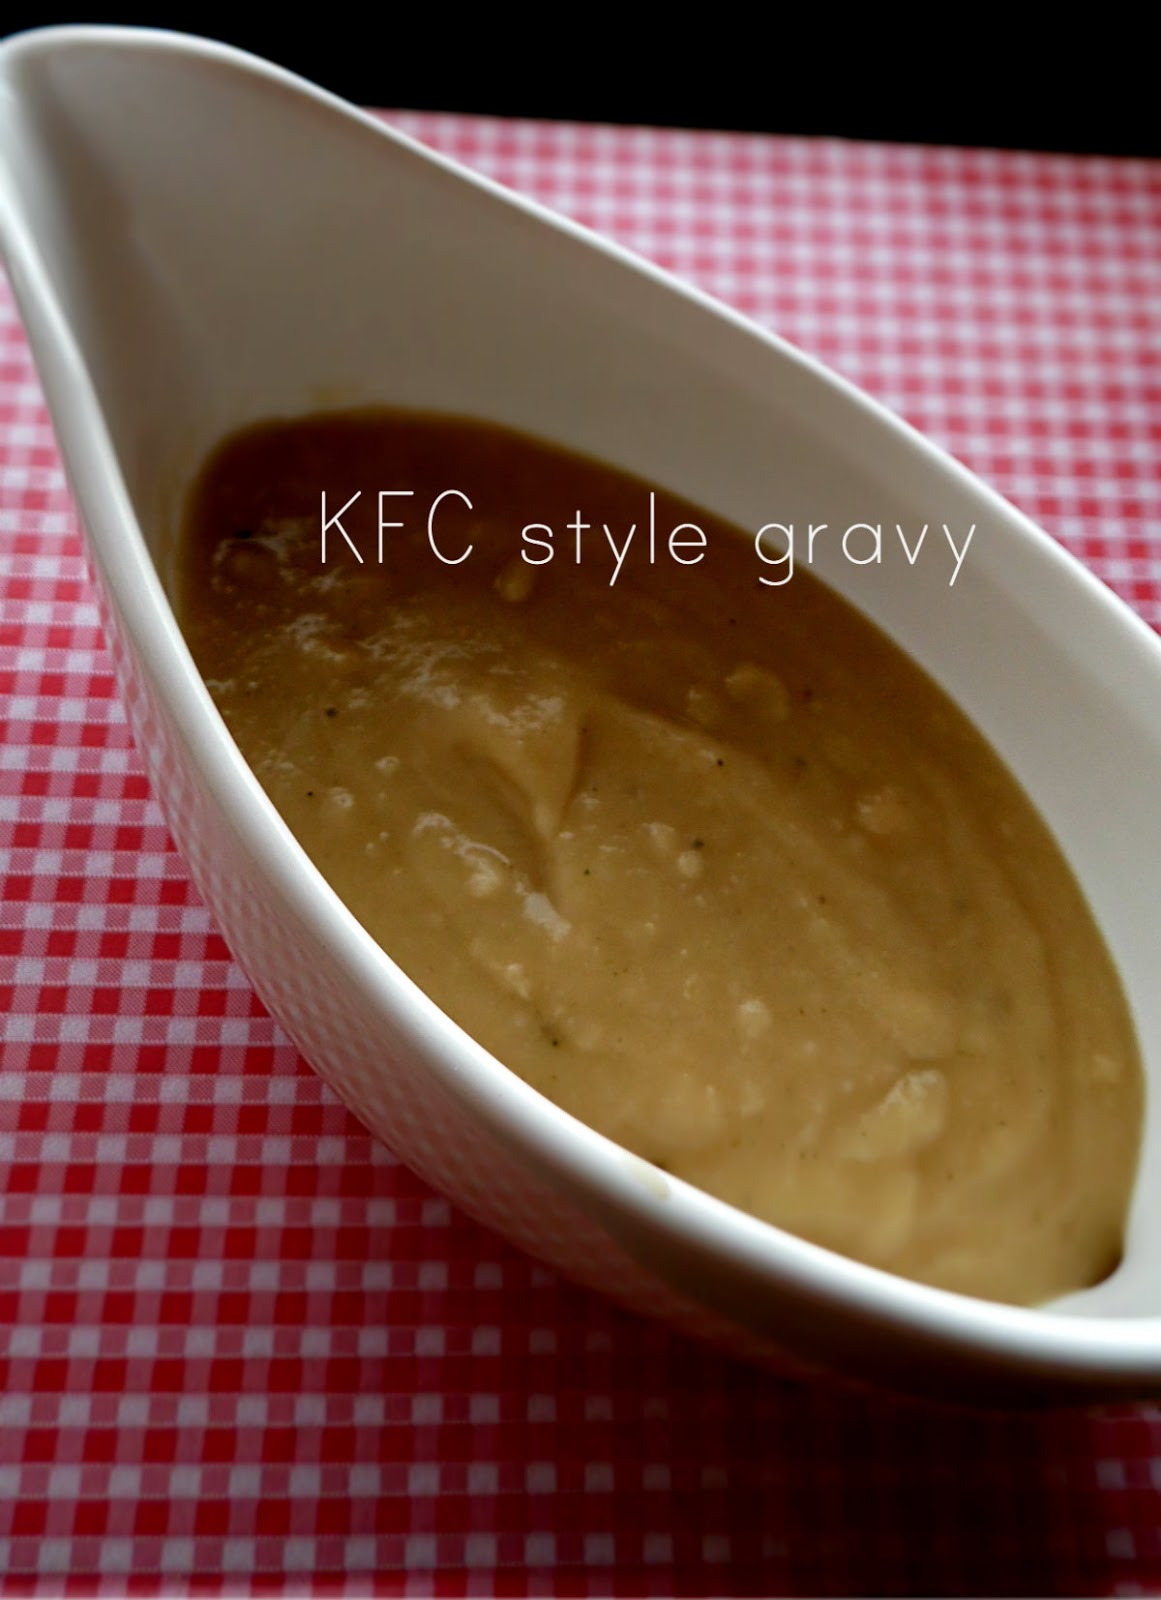 Cooking in Hungary: KFC style gravy